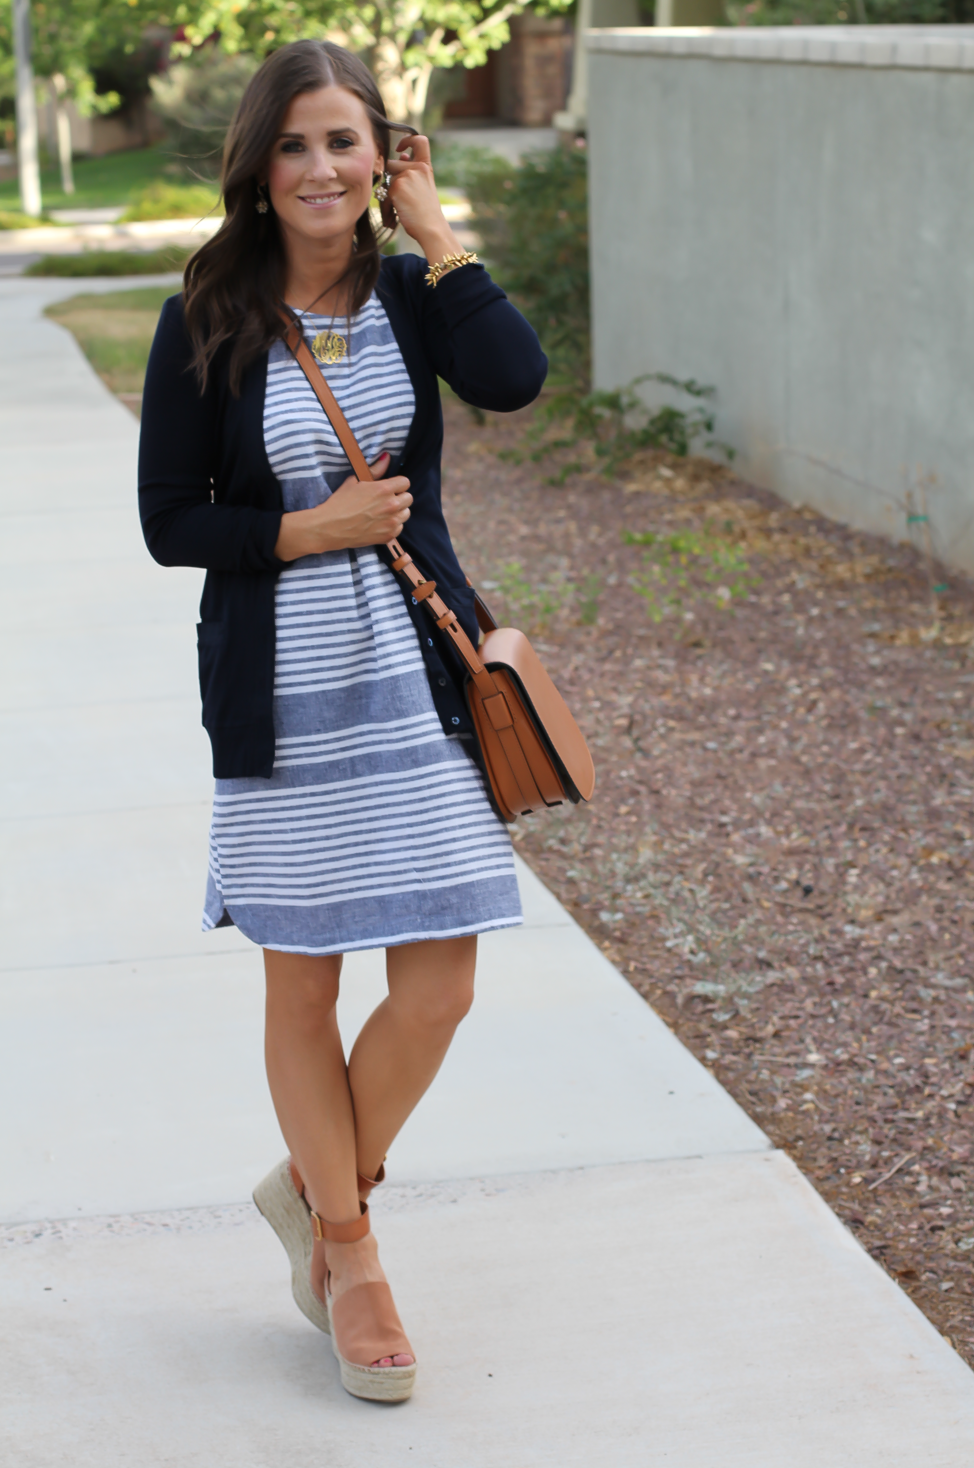 Blue Chambray White Striped Dress, Navy Cotton Cardigan, Tan Suede Espadrilles, Tan Leather Crossbody, Old Navy, J.Crew, Chloe, Tory Burch 16